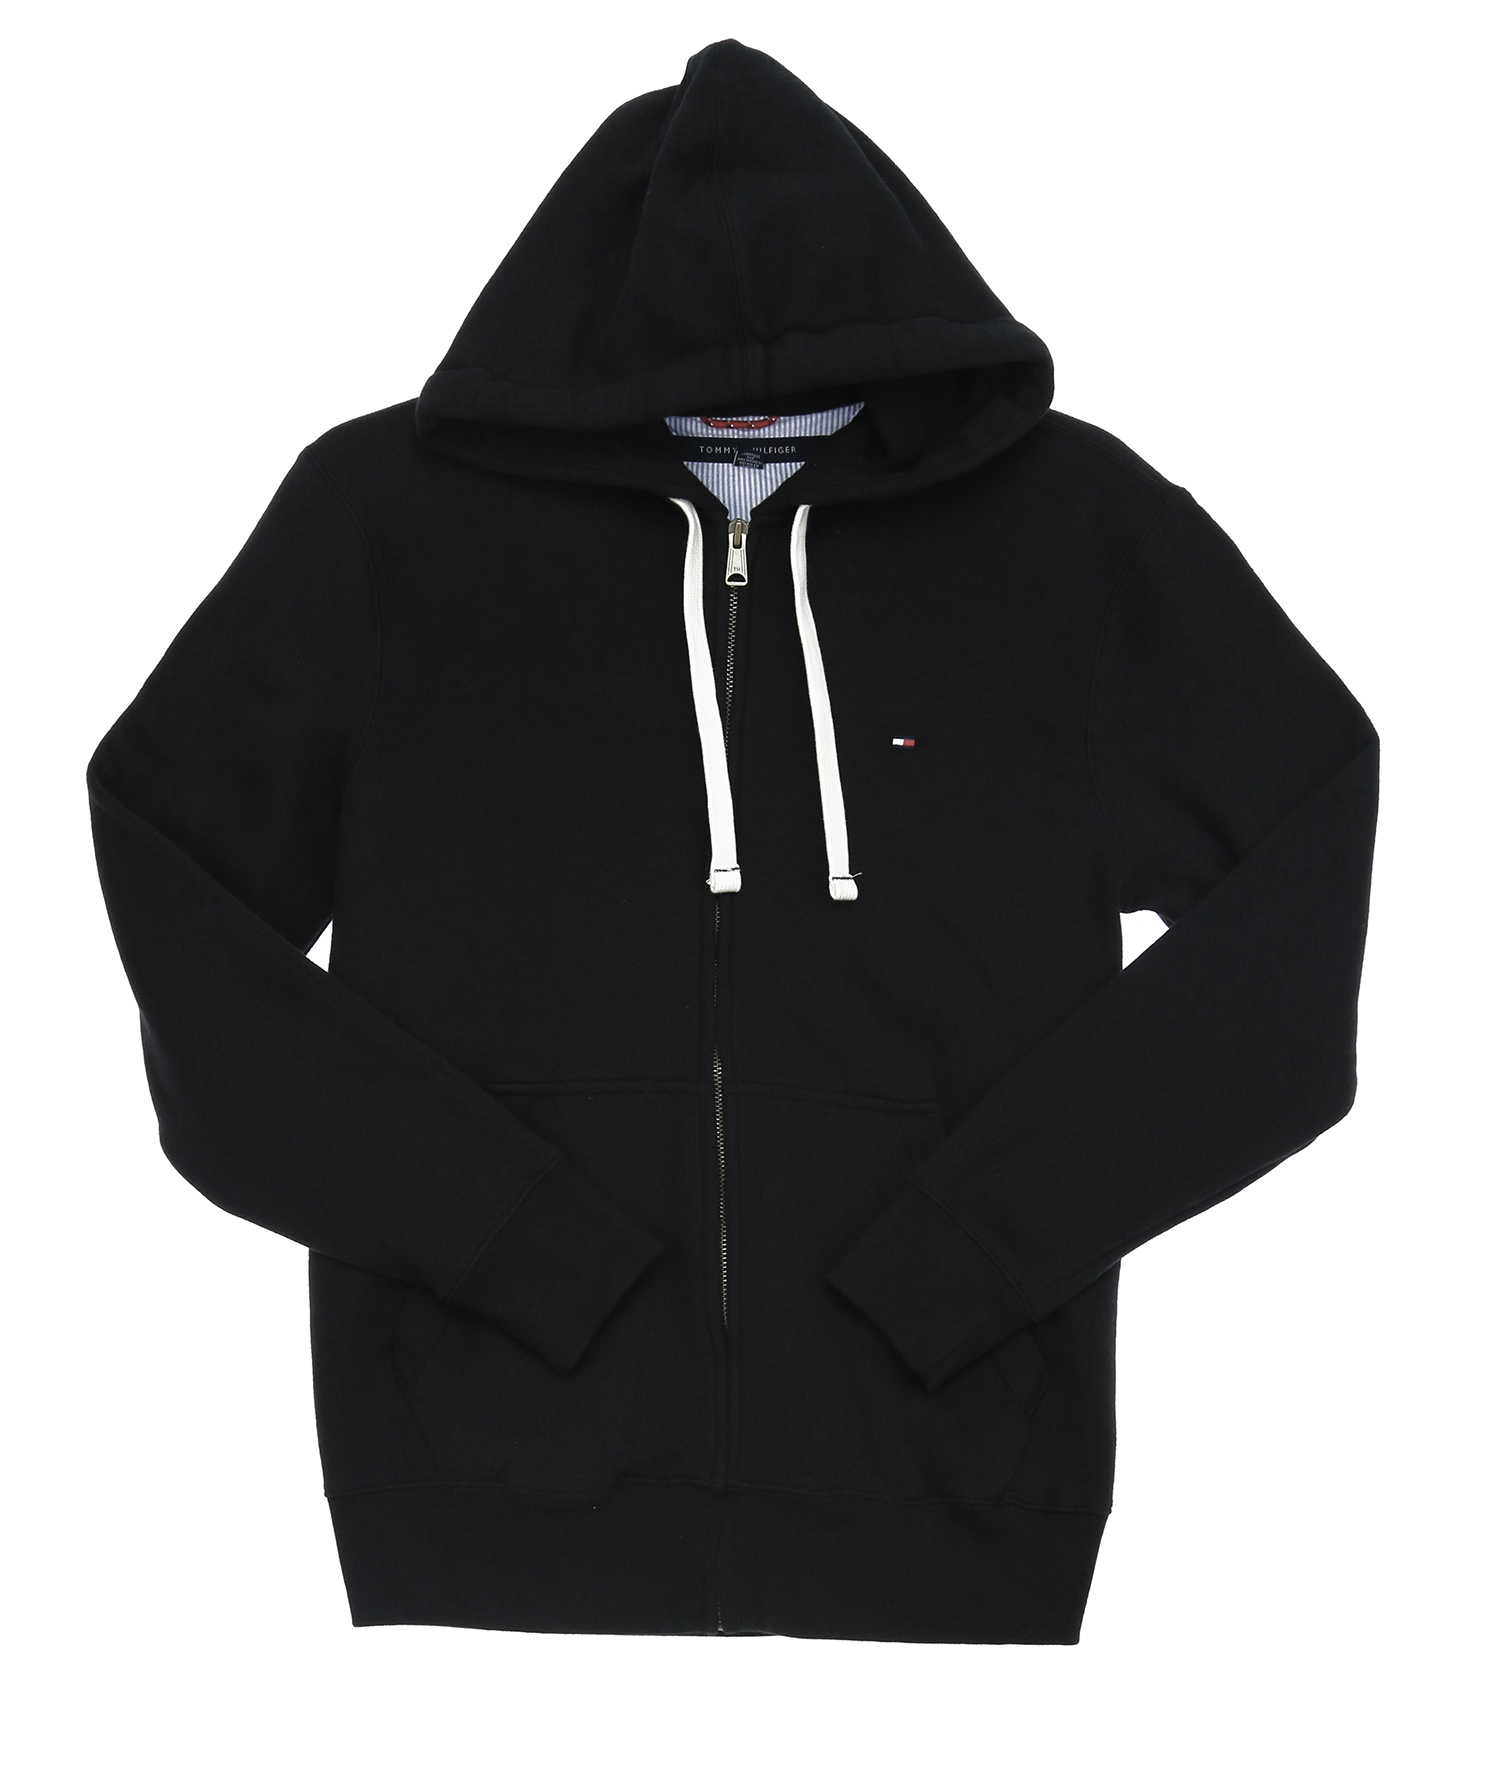 tommy hilfiger men 39 s plains drawstring hoodie sweatshirt. Black Bedroom Furniture Sets. Home Design Ideas